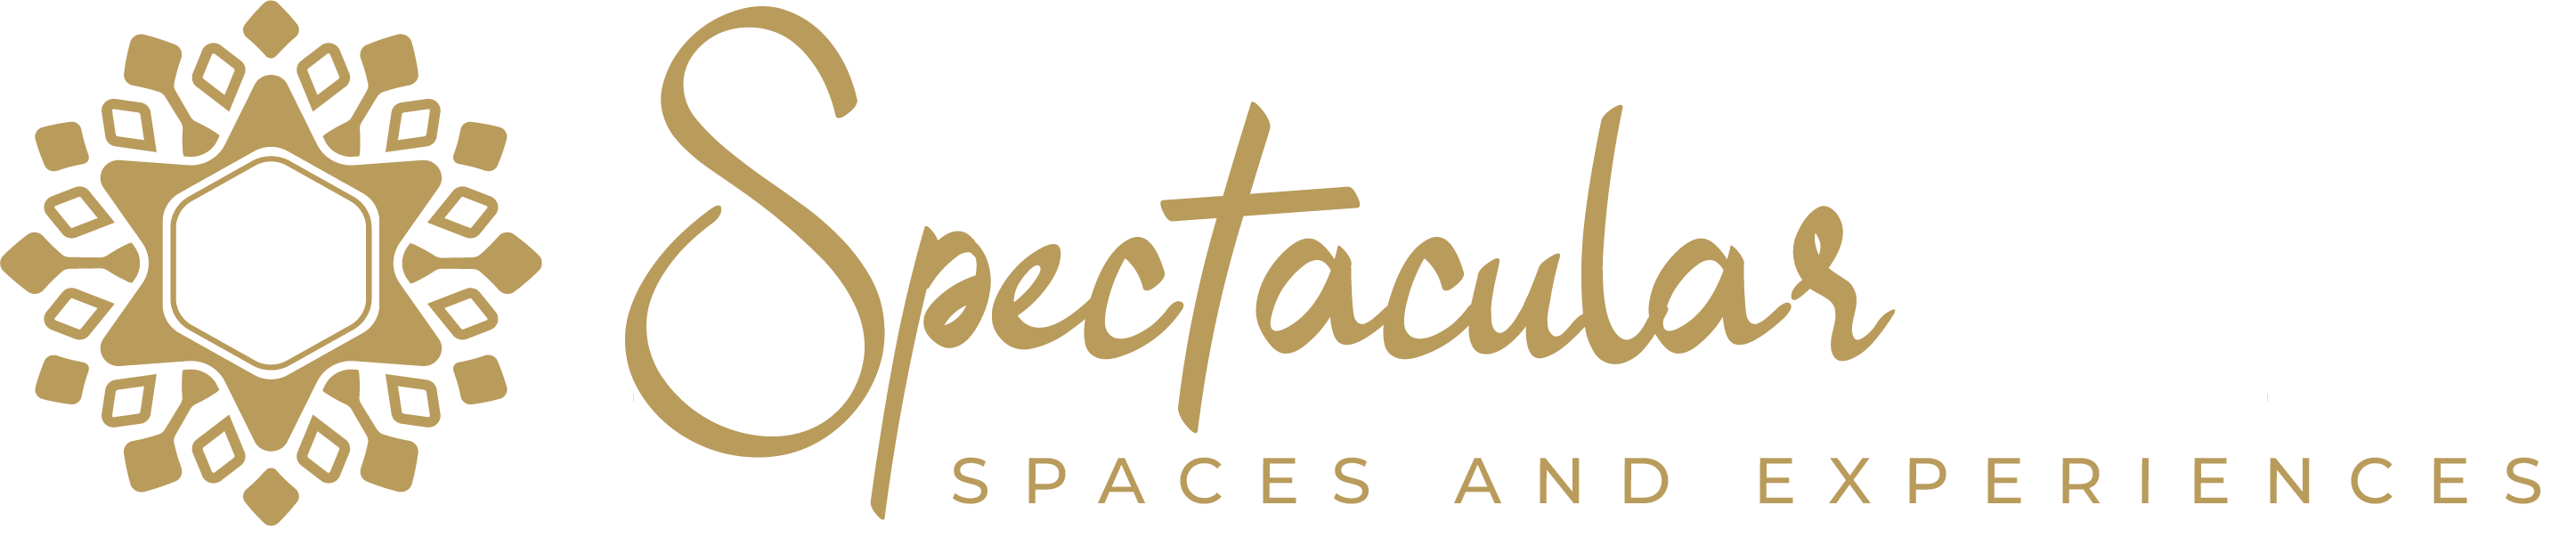 Spectacular Spaces and Experiences